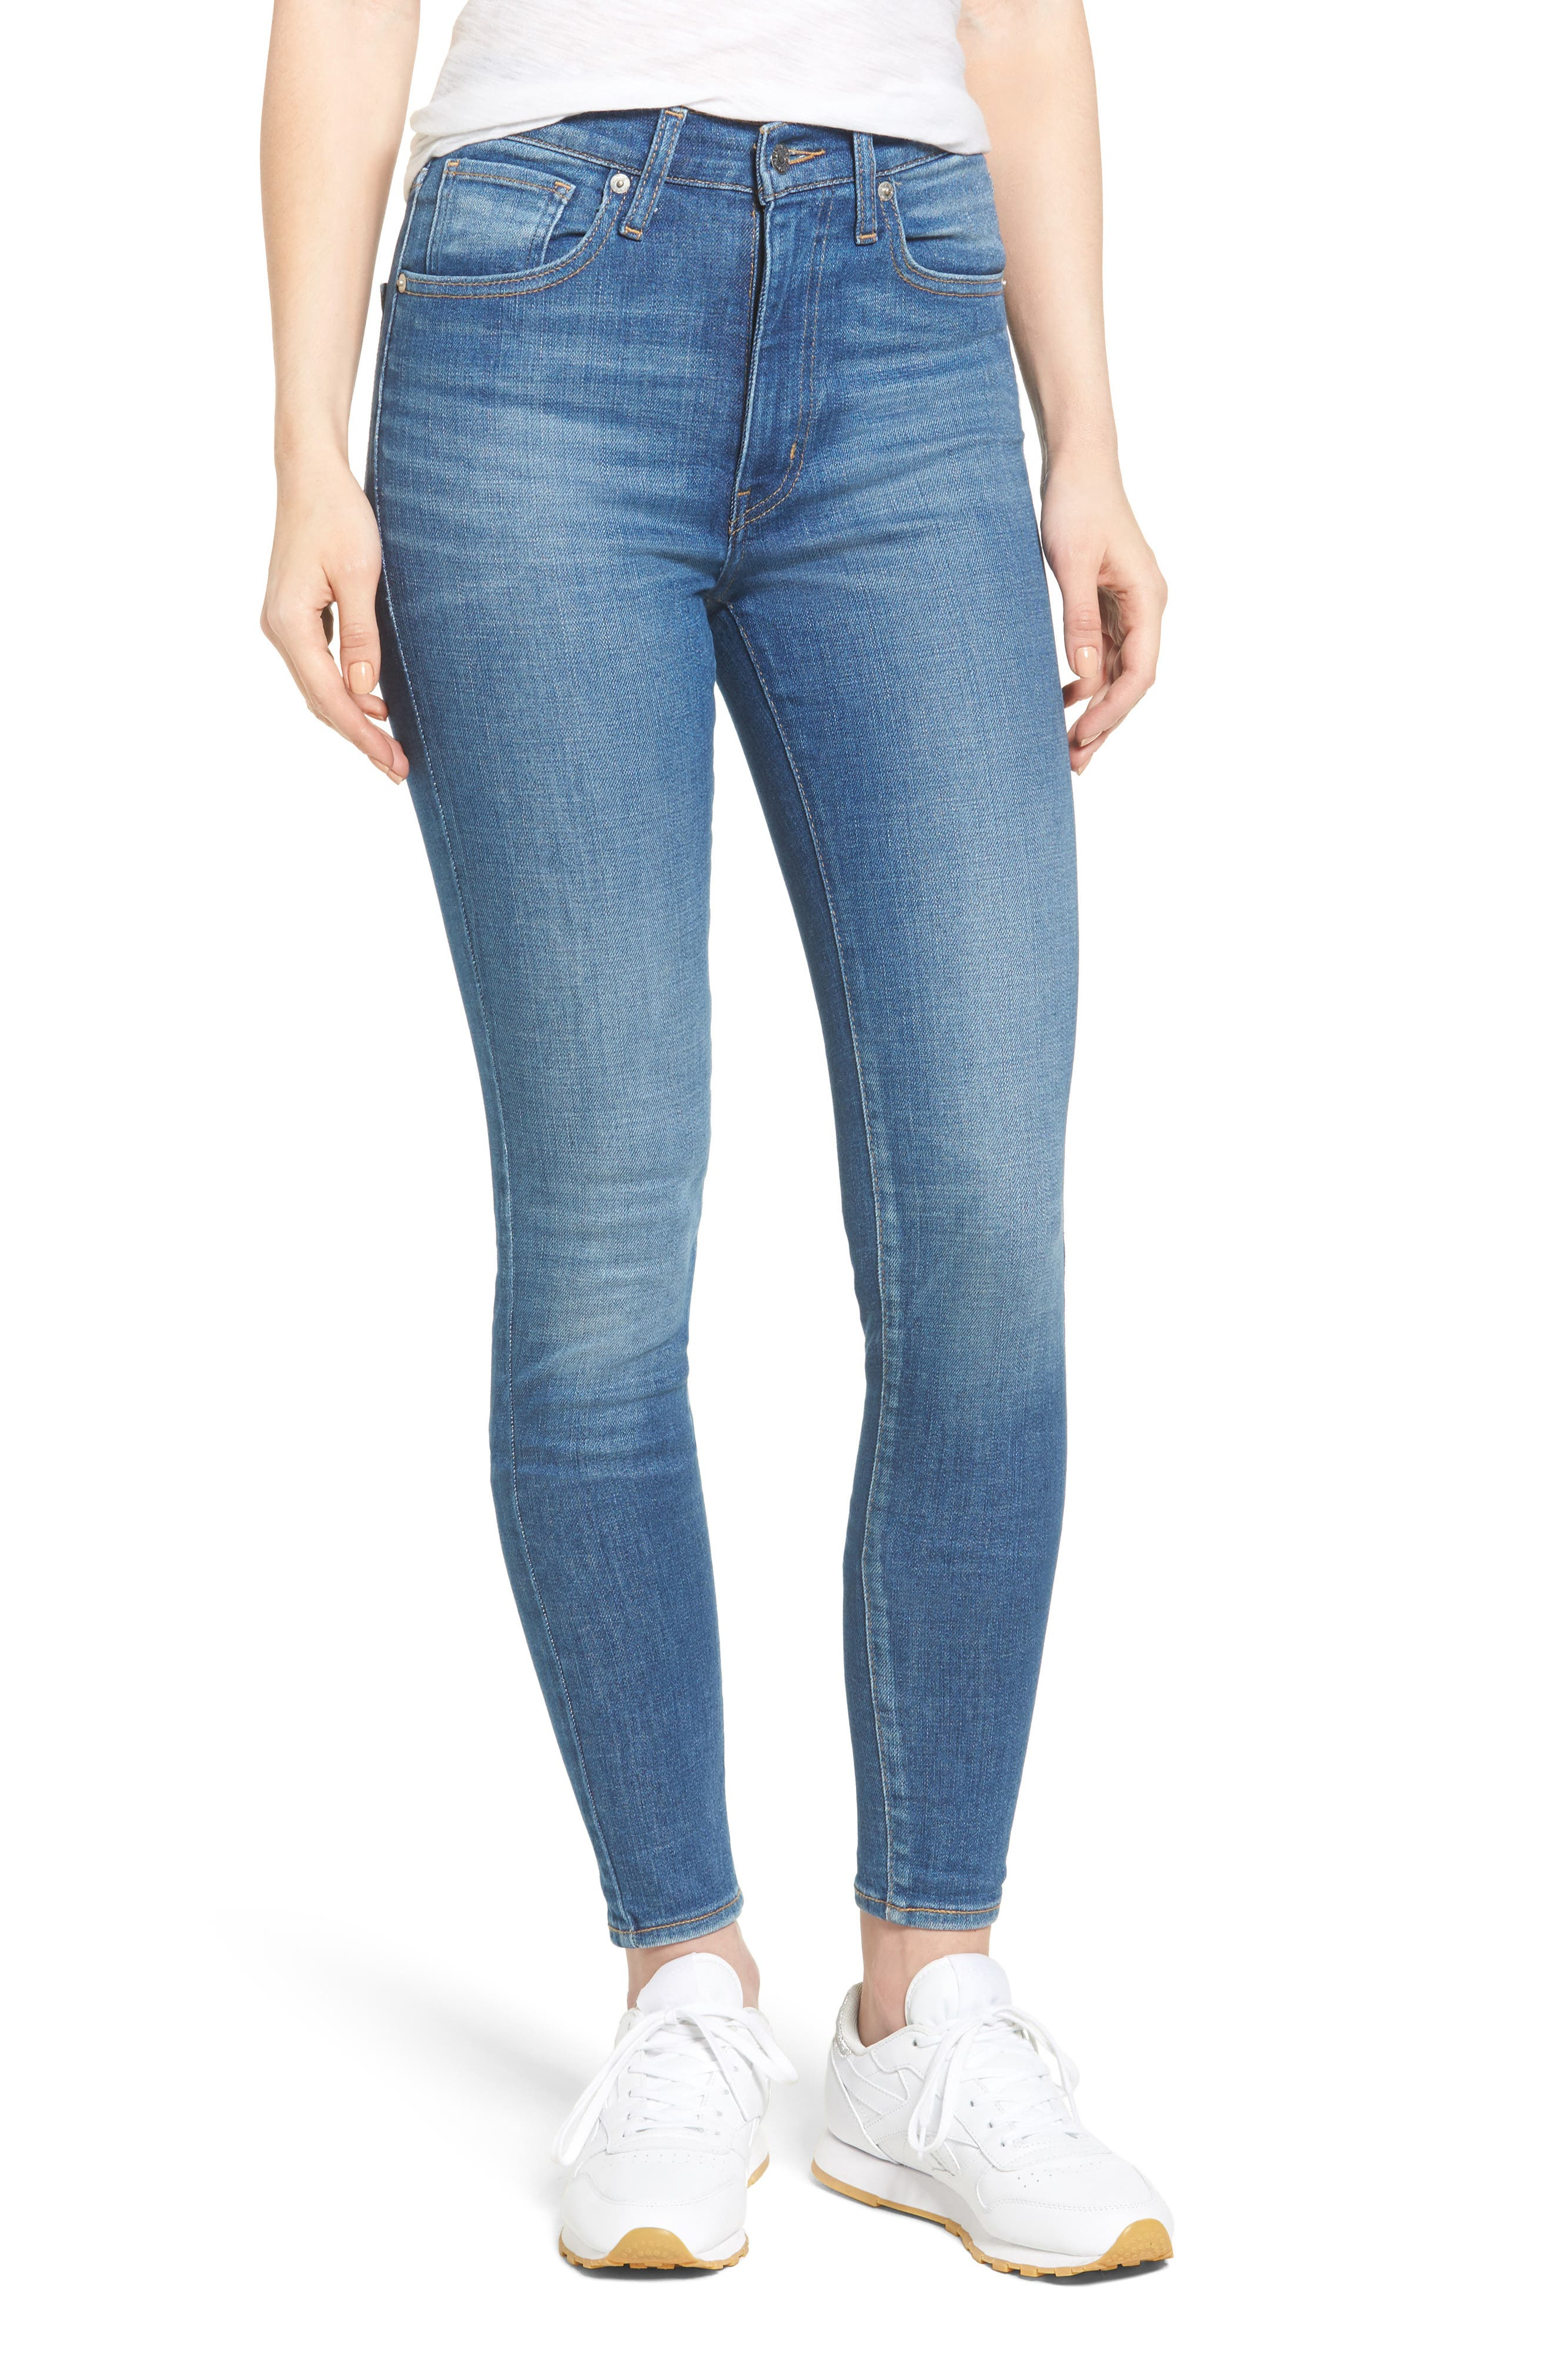 Mile High Skinny Jeans,                         Main,                         color, Shut The Front Door